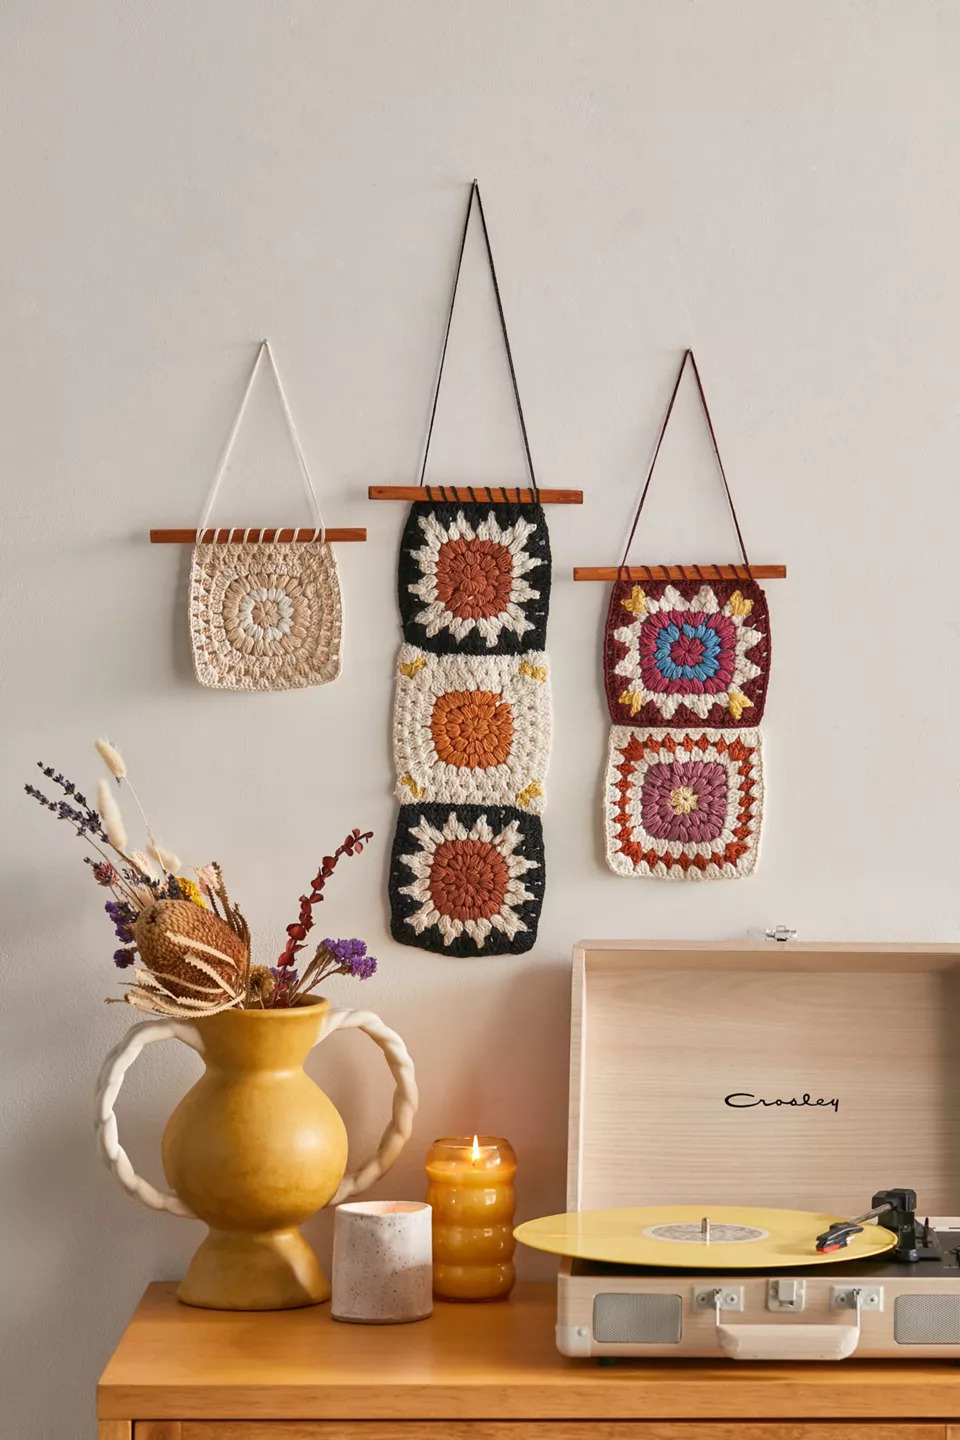 Add a Simple Artsy Touch With Hanging Crochet Squares